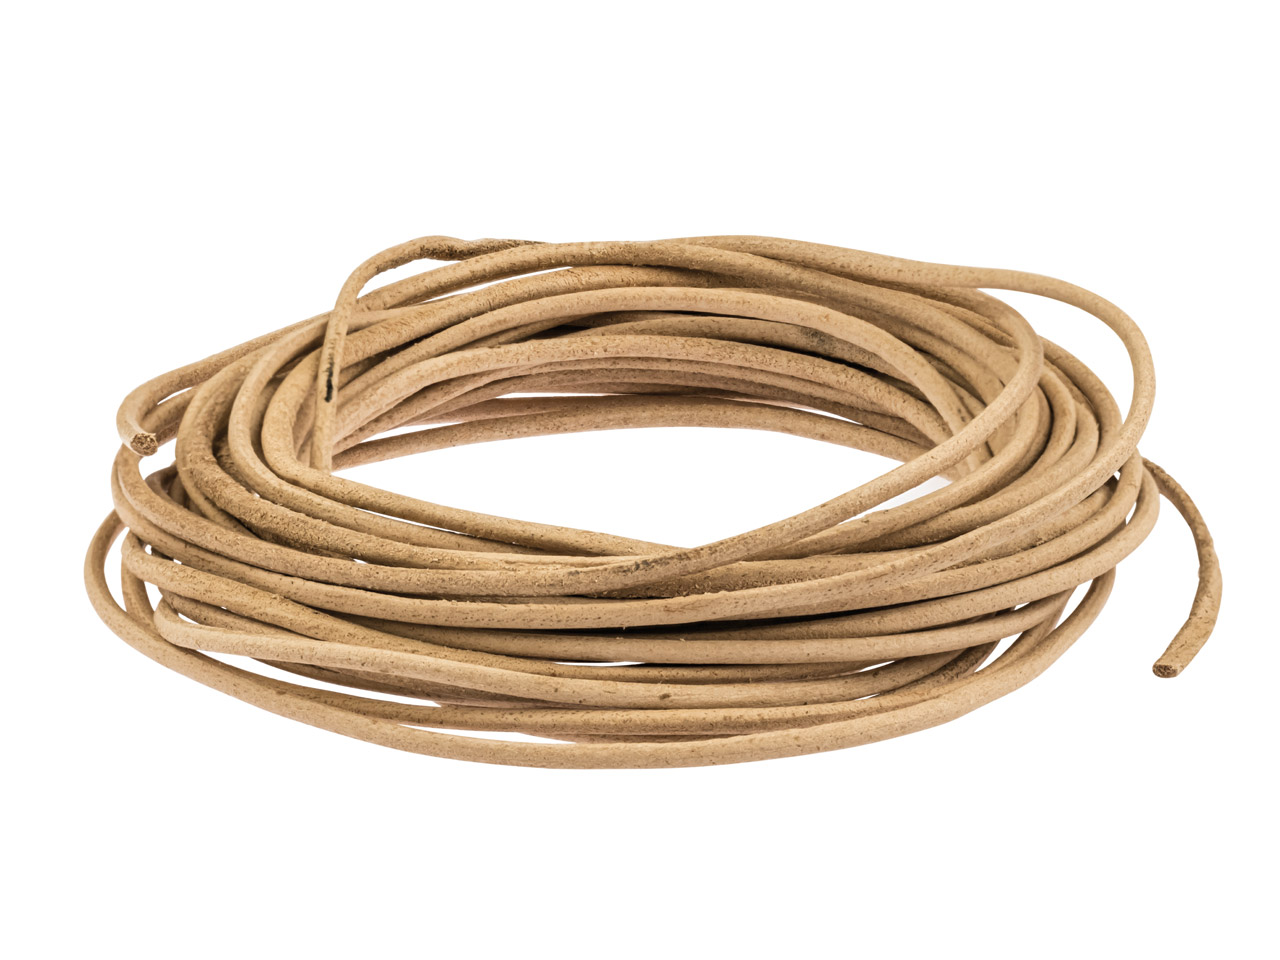 Natural Round Leather Cord 2mm     Diameter, 1 X 5 Metre Length